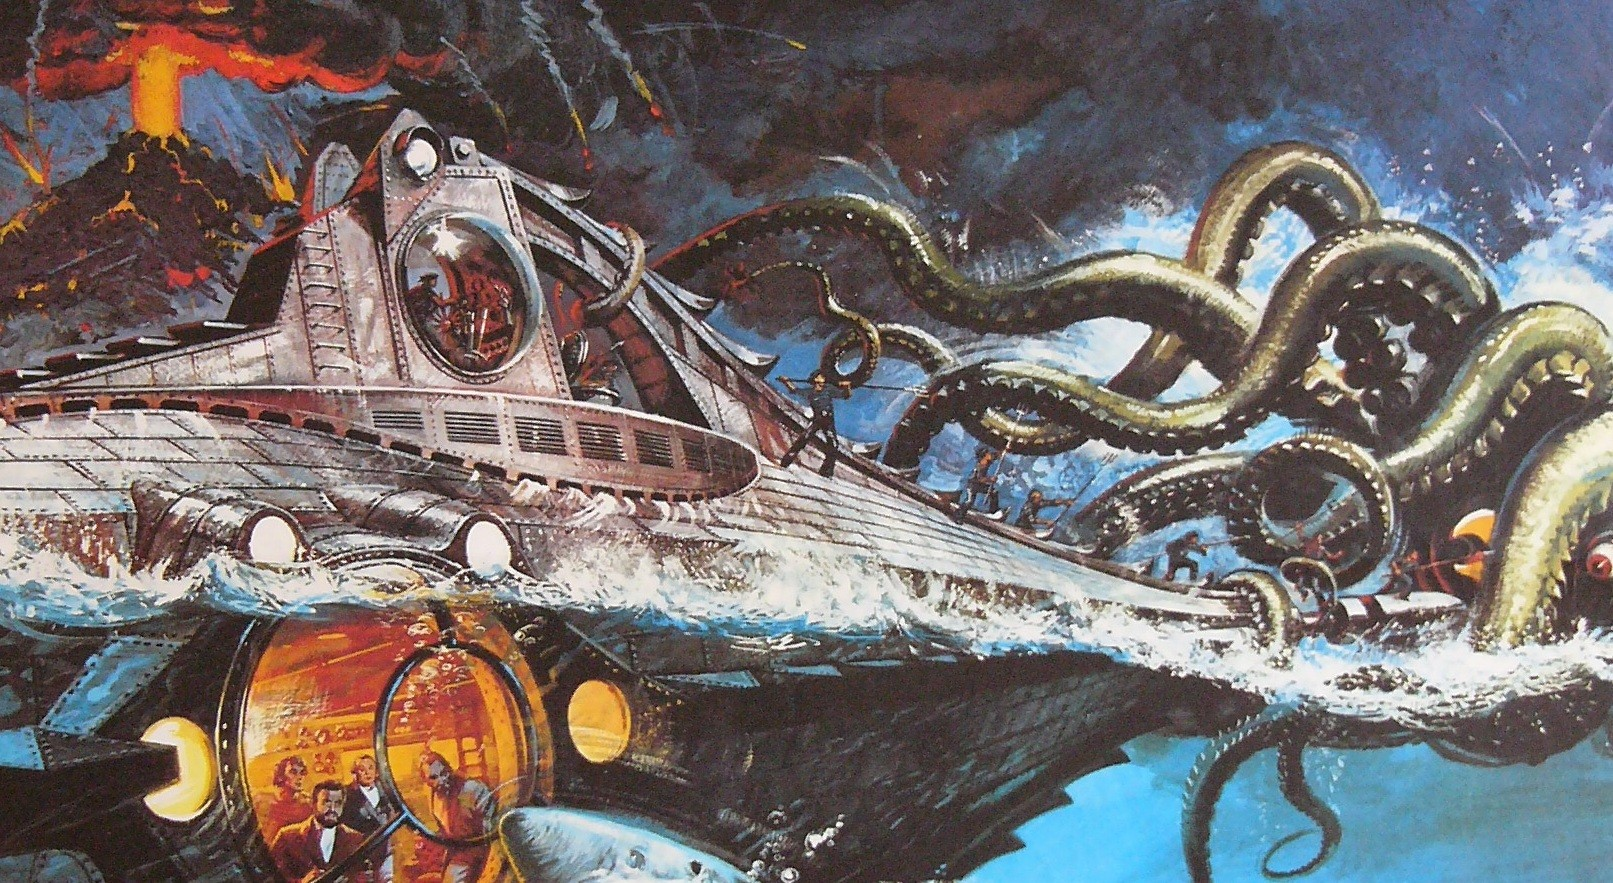 20,000 Leagues Under The Sea Backgrounds, Compatible - PC, Mobile, Gadgets| 1613x883 px